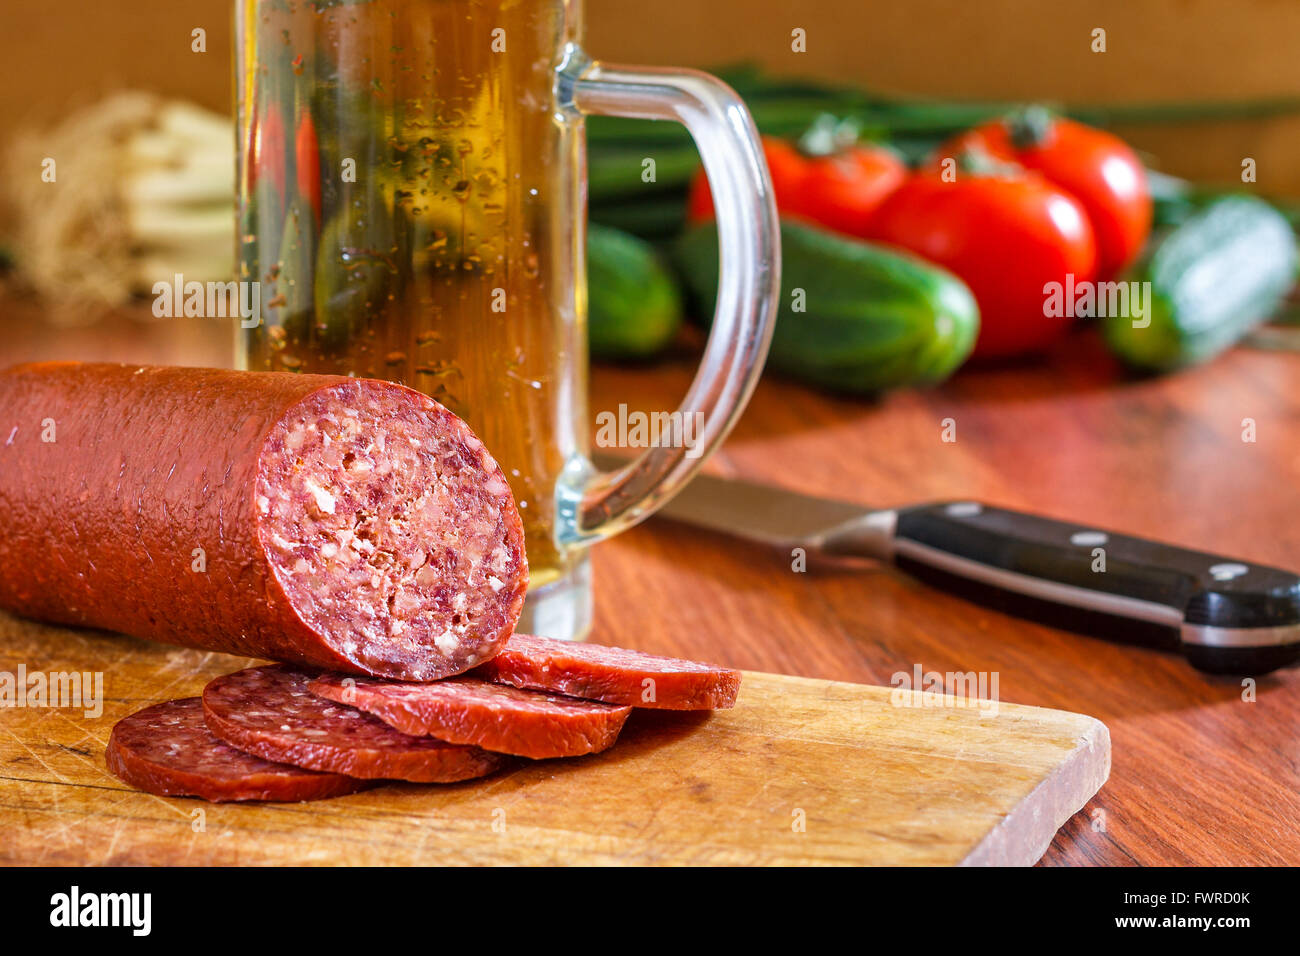 Sujuk sausage on wooden cutting board with beer mug, knife and fresh vegetables in background. Copy space Stock Photo